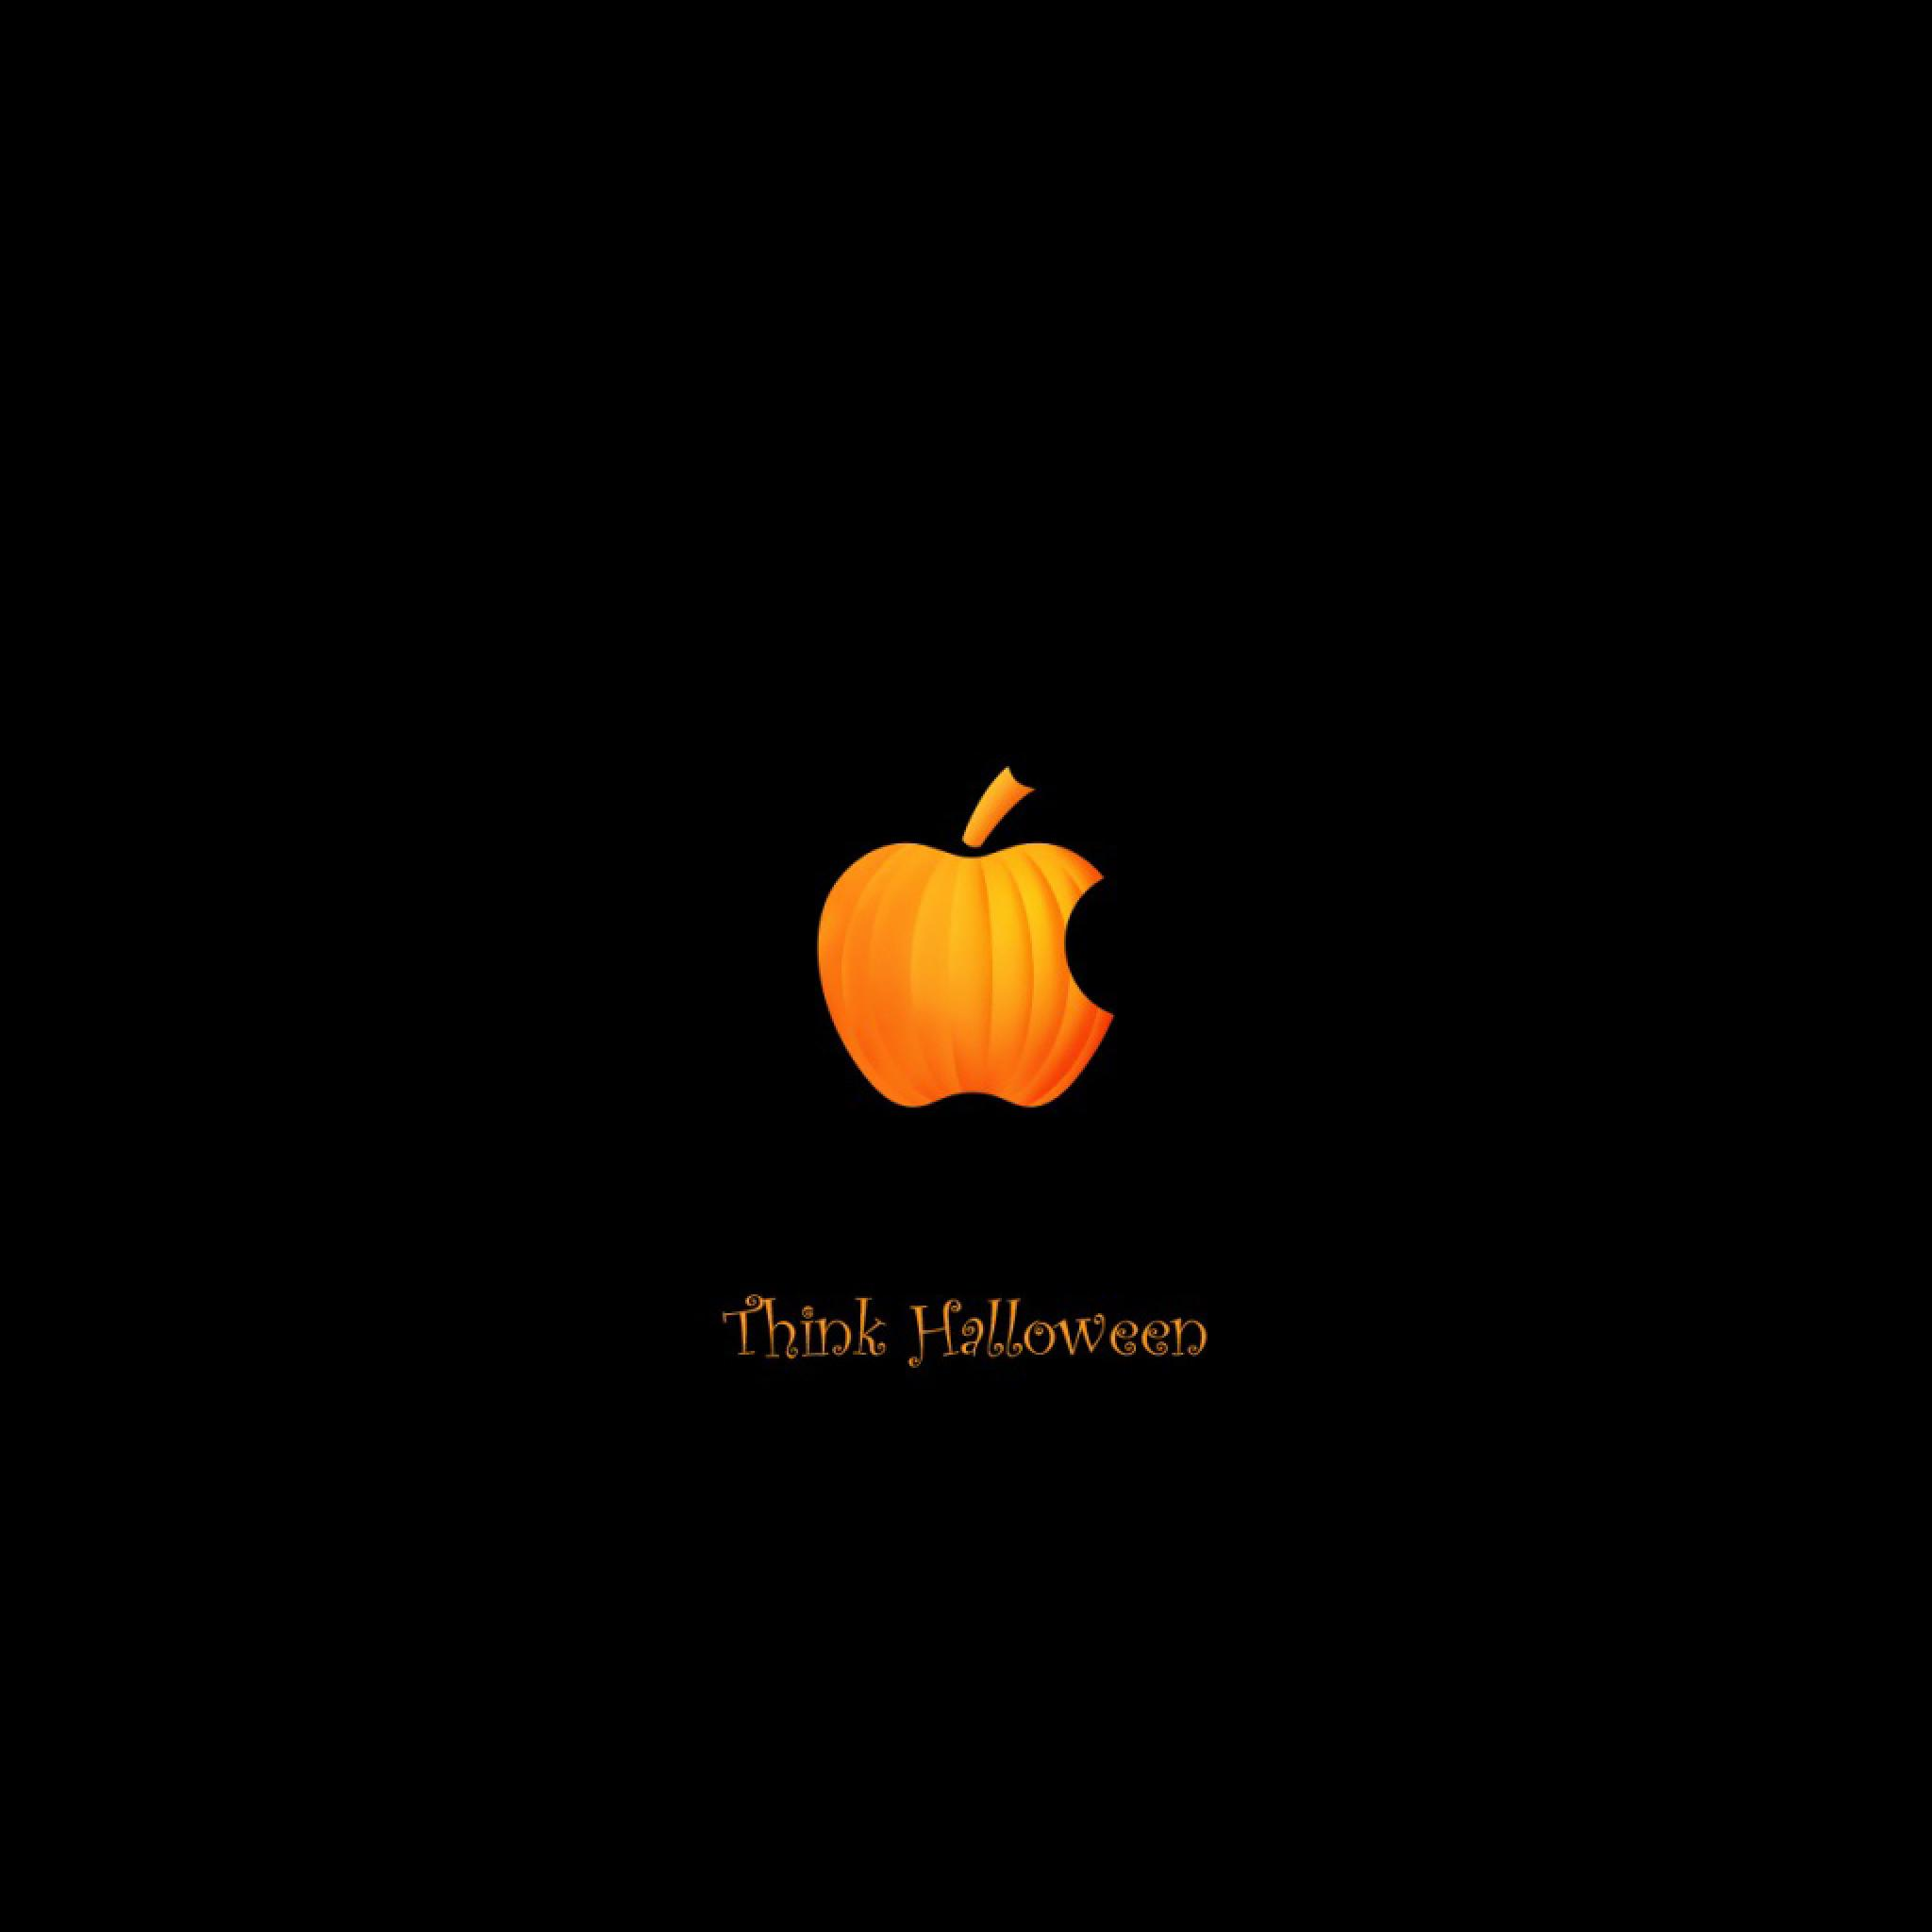 Amazing Wallpaper Halloween Screensaver - dUKm6H  HD_882586.jpg